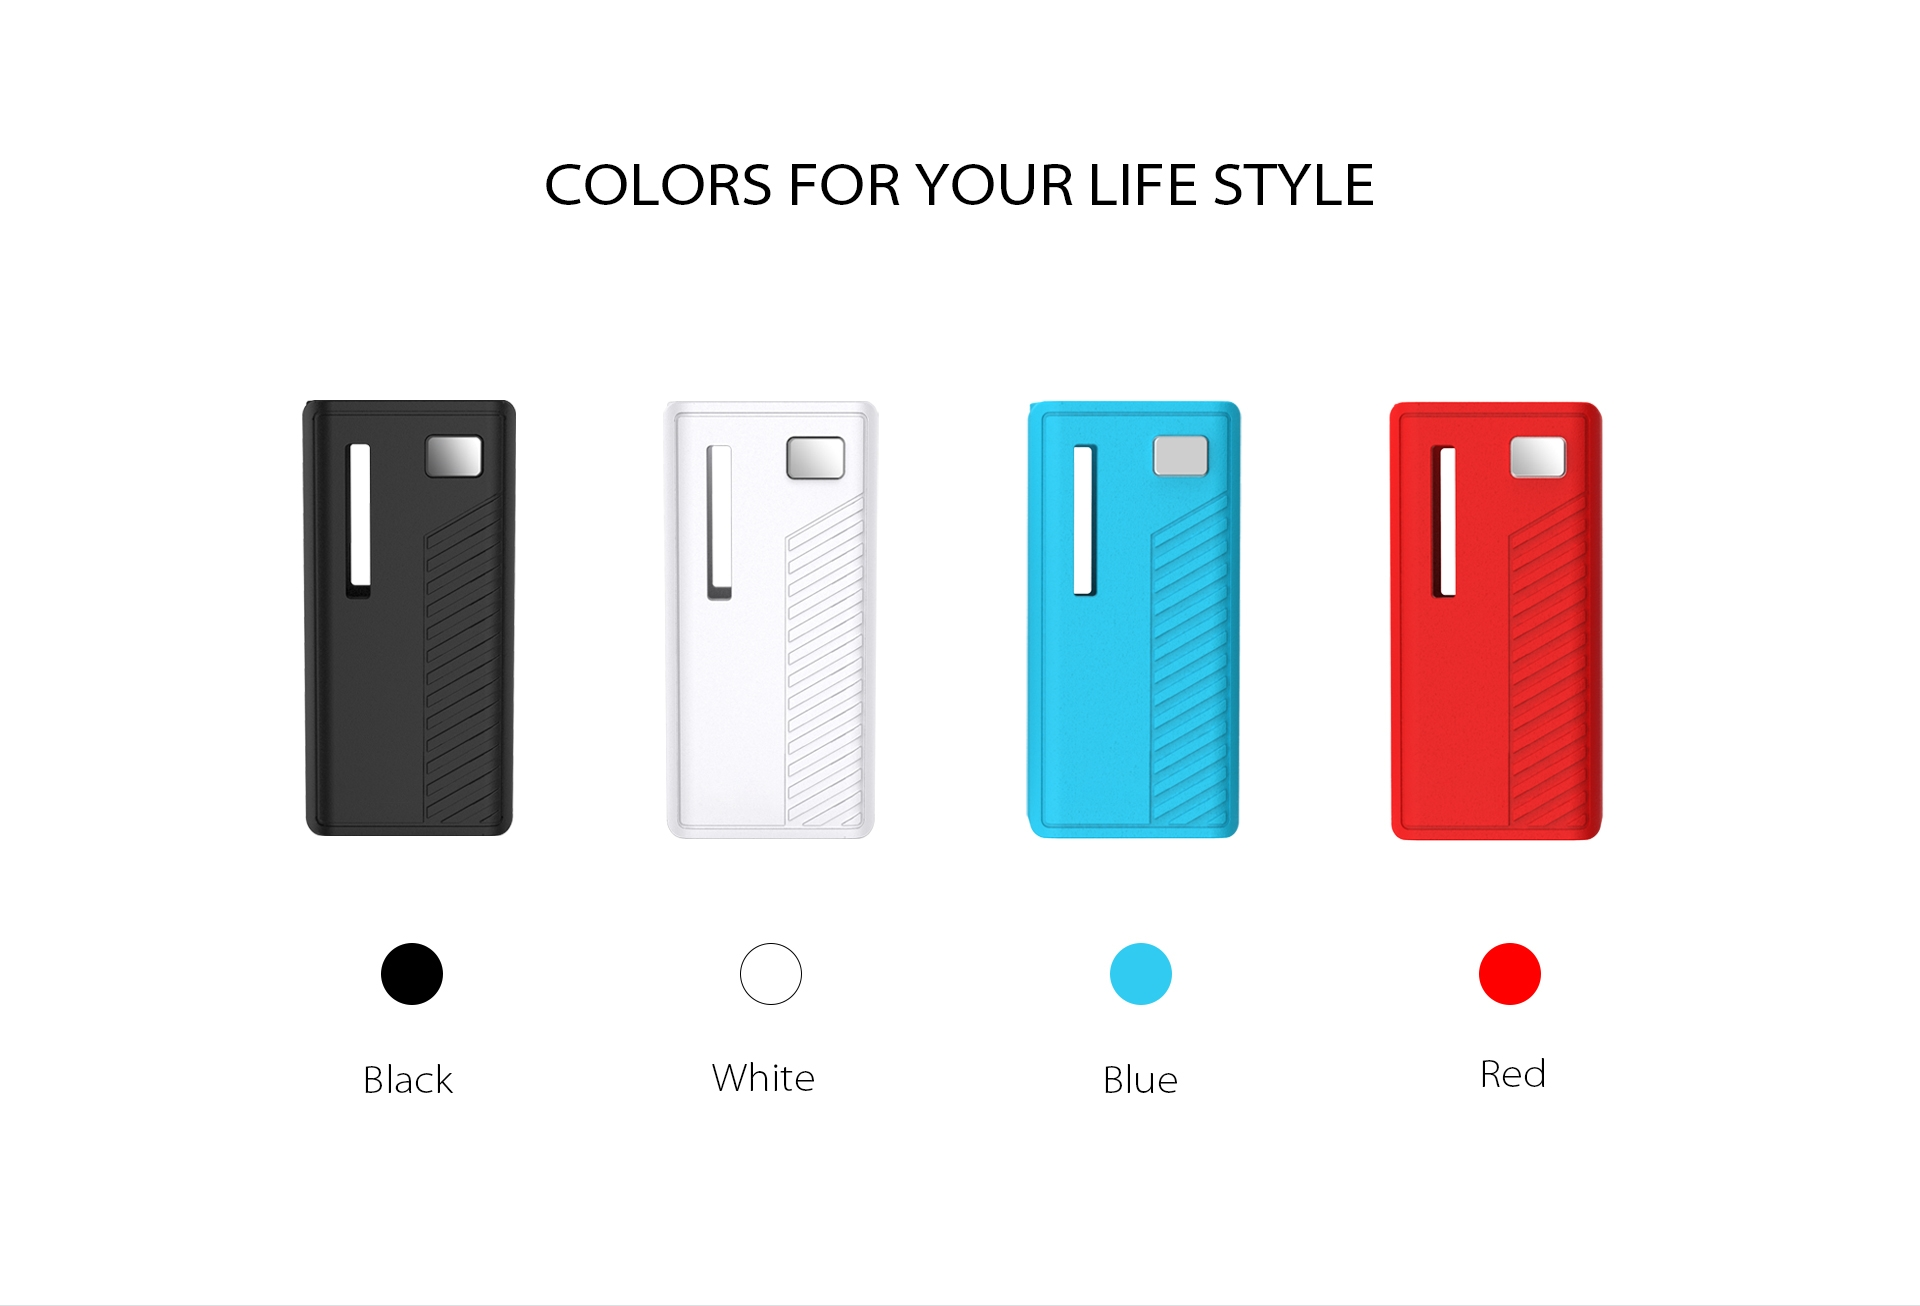 The Yocan Rega Box Mod Battery come with 4 colors.